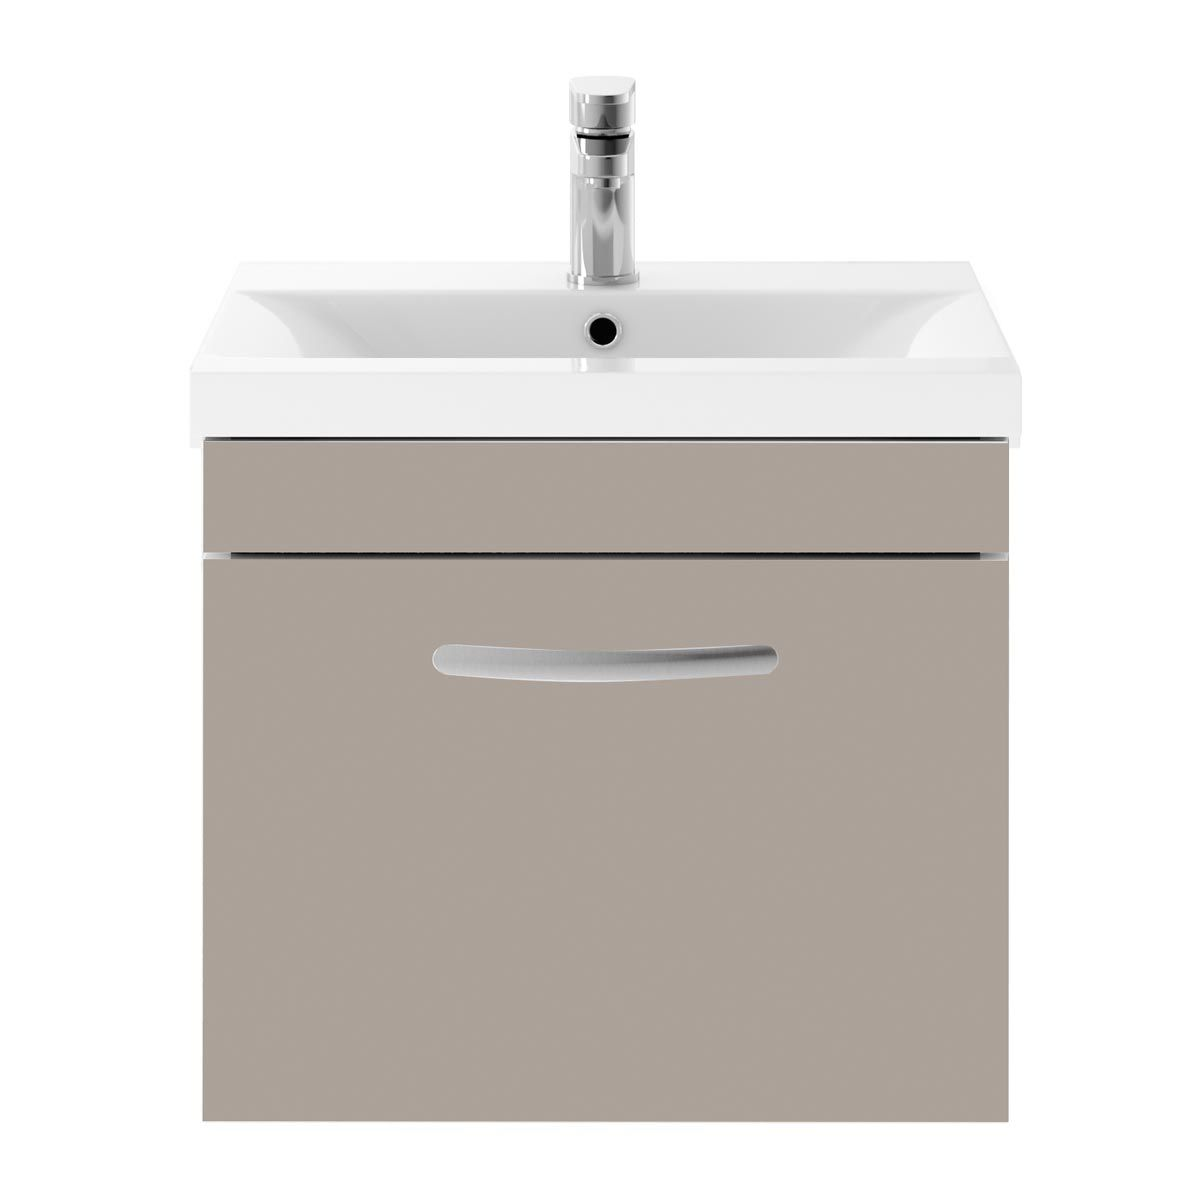 Nuie Athena Stone Grey 1 Drawer Wall Hung Vanity Unit with 40mm Profile Basin 500mm